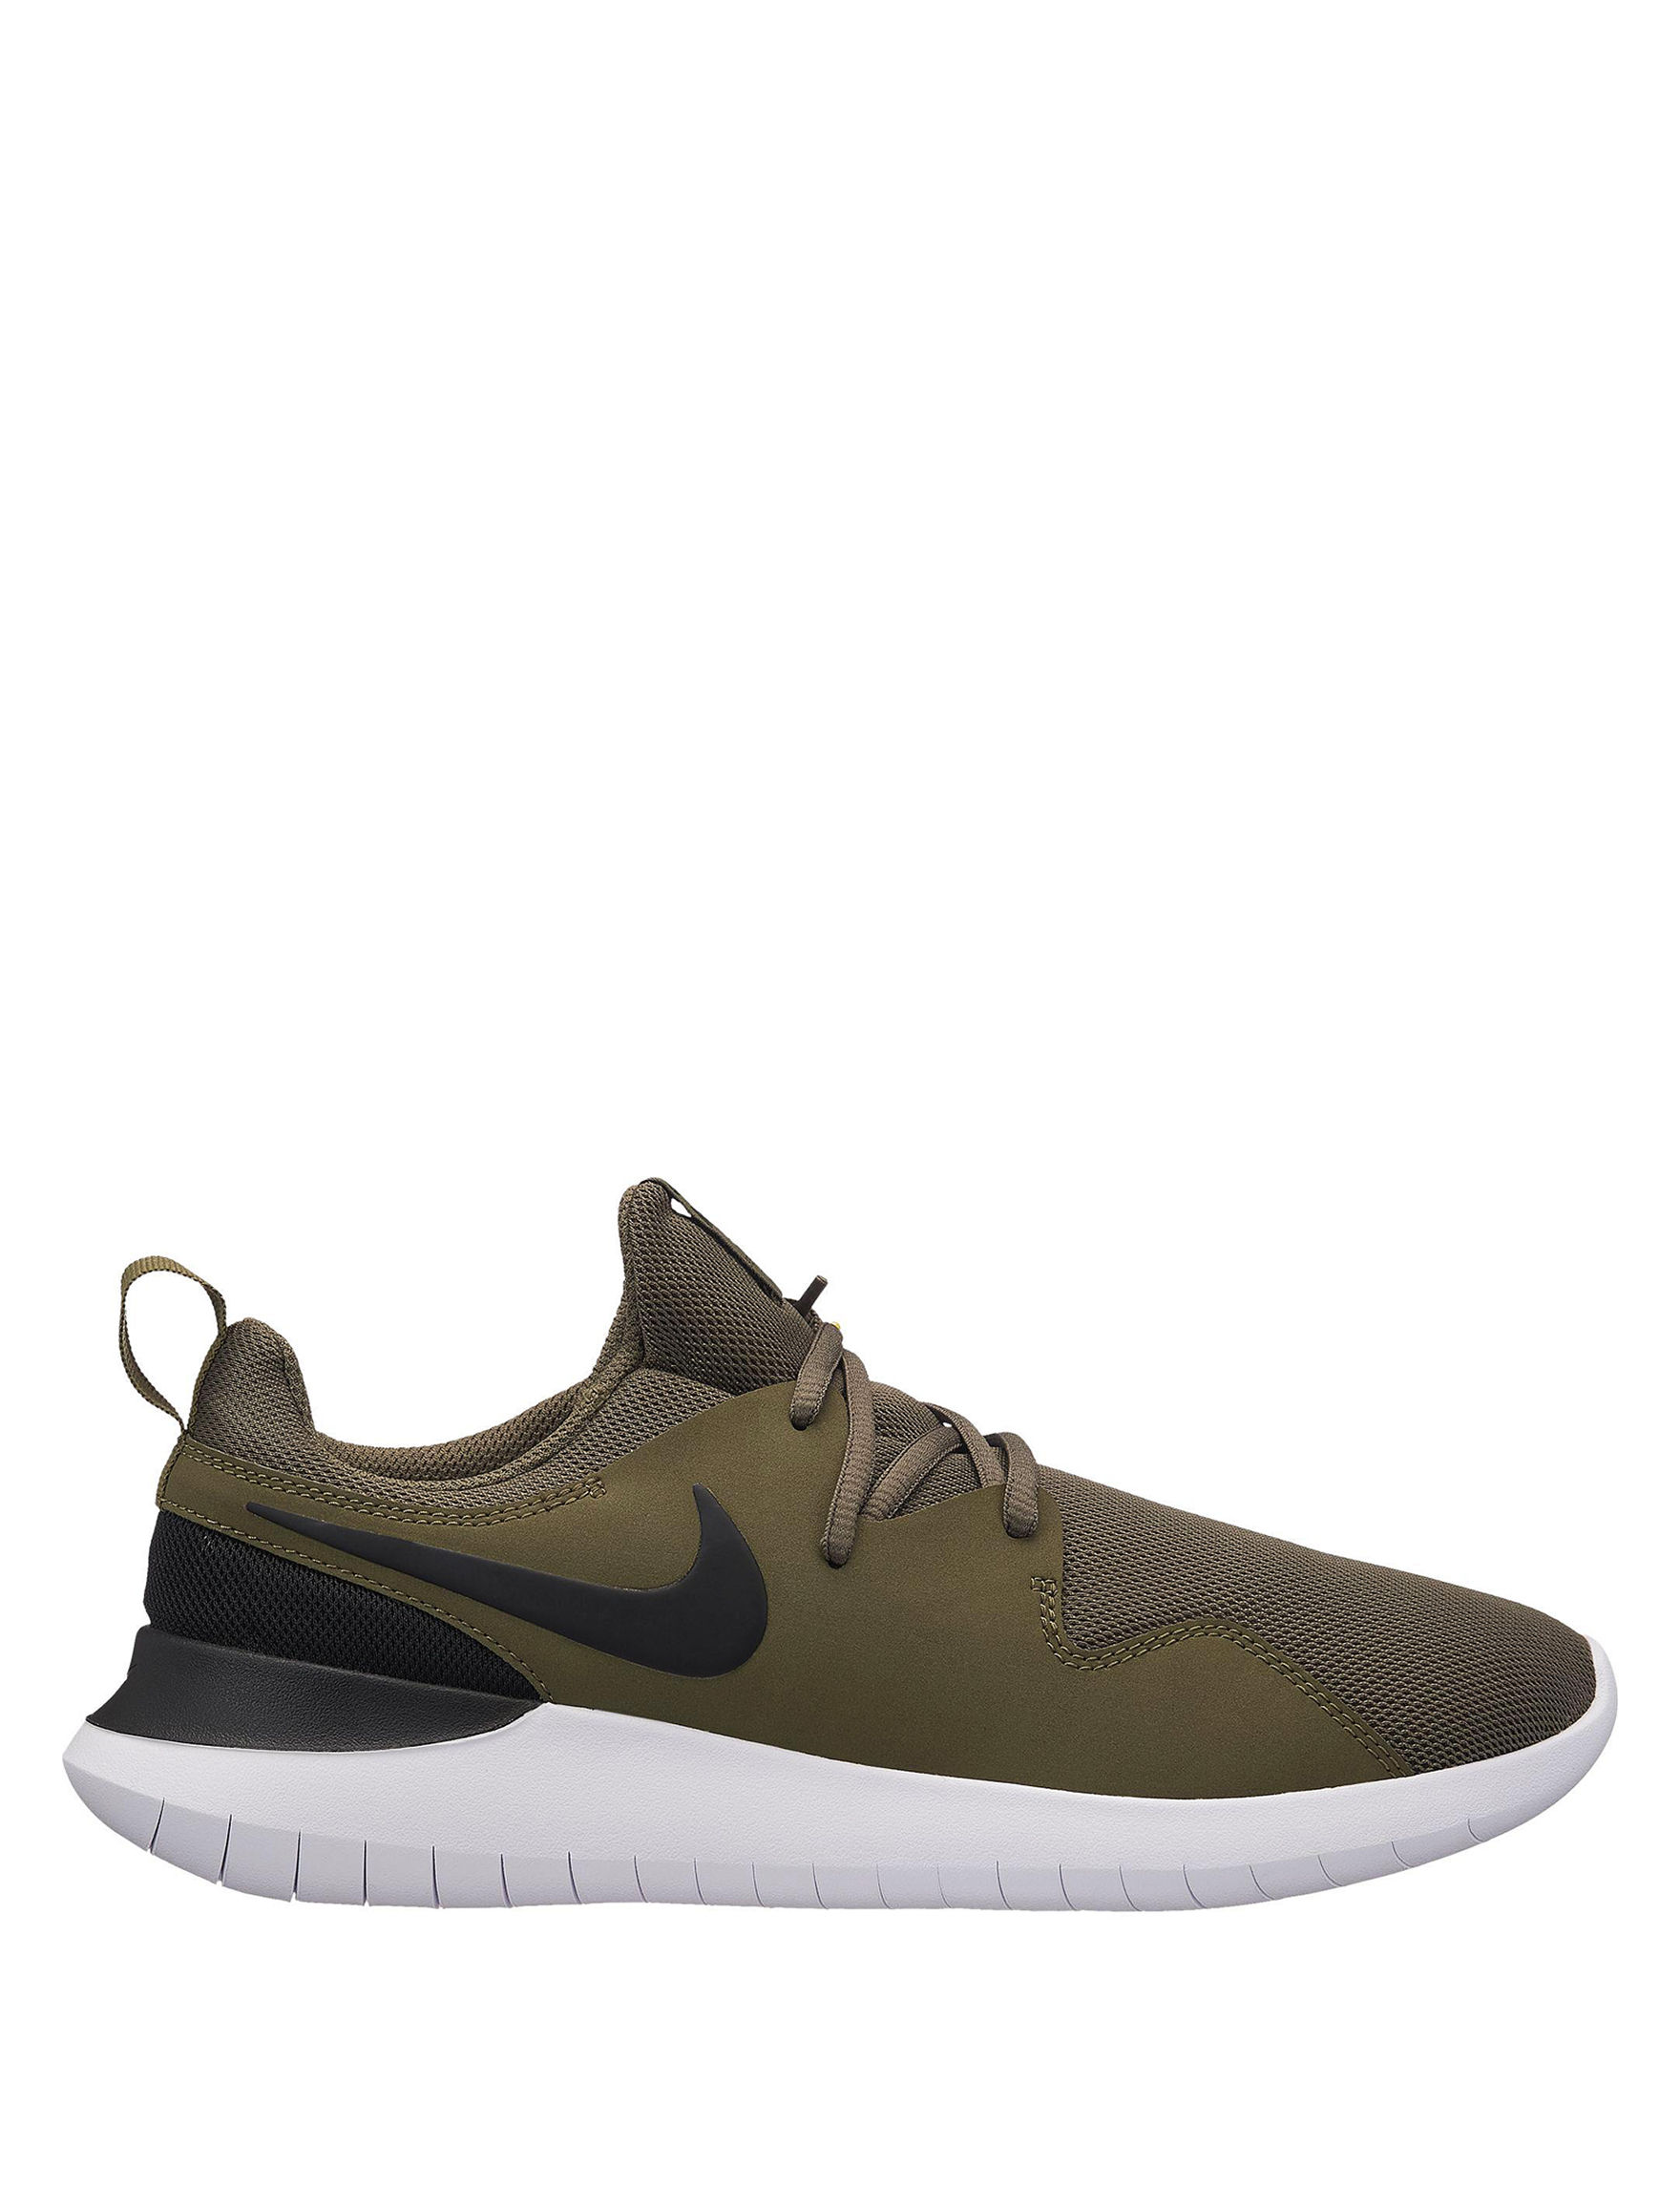 Nike Men's Tessen Running Shoes